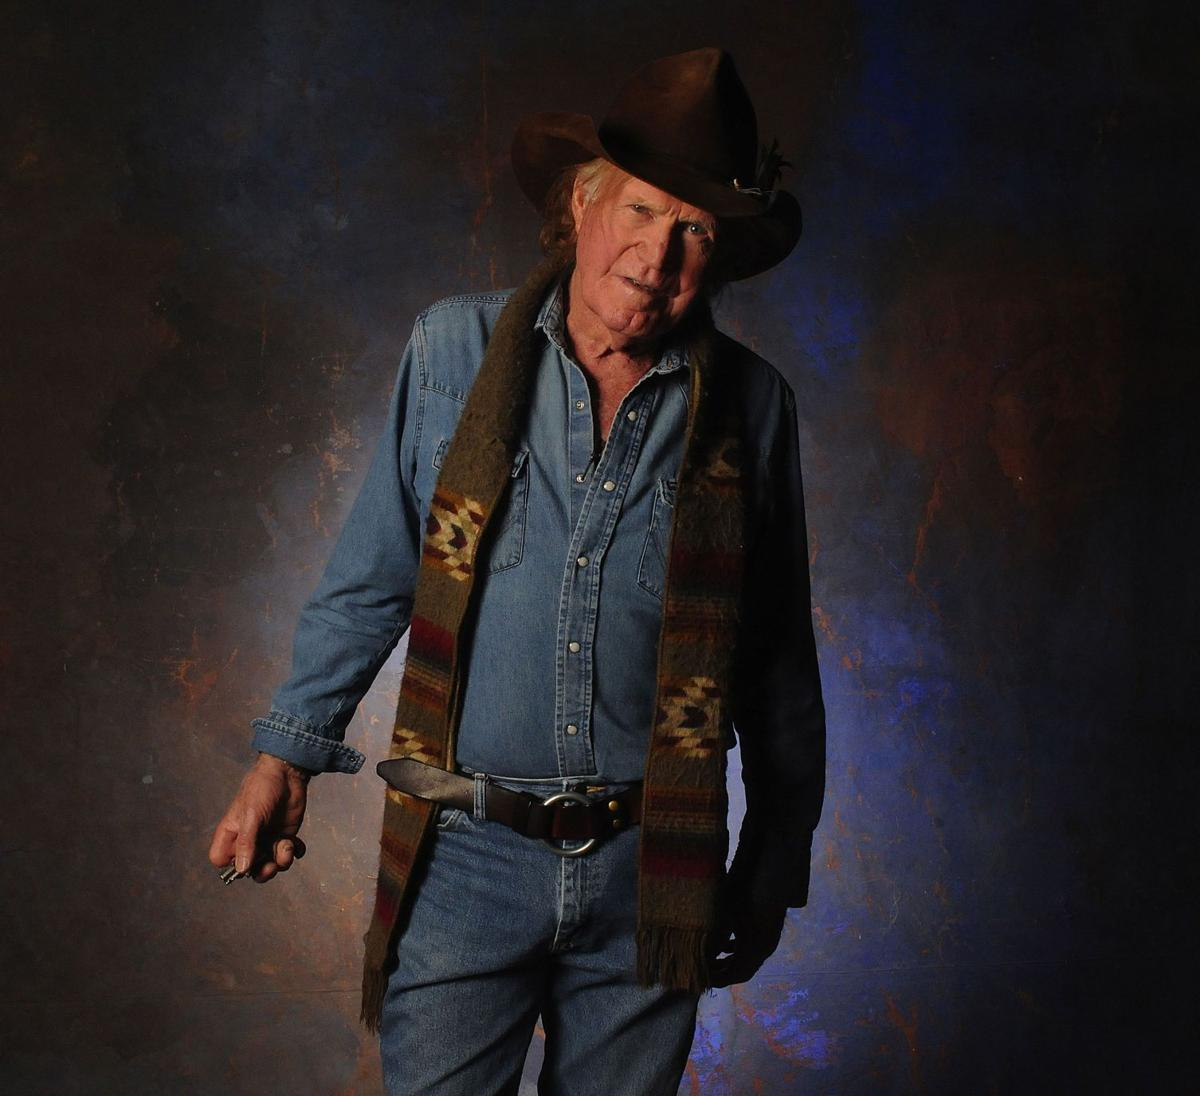 At 75, outlaw Billy Joe Shaver at his best